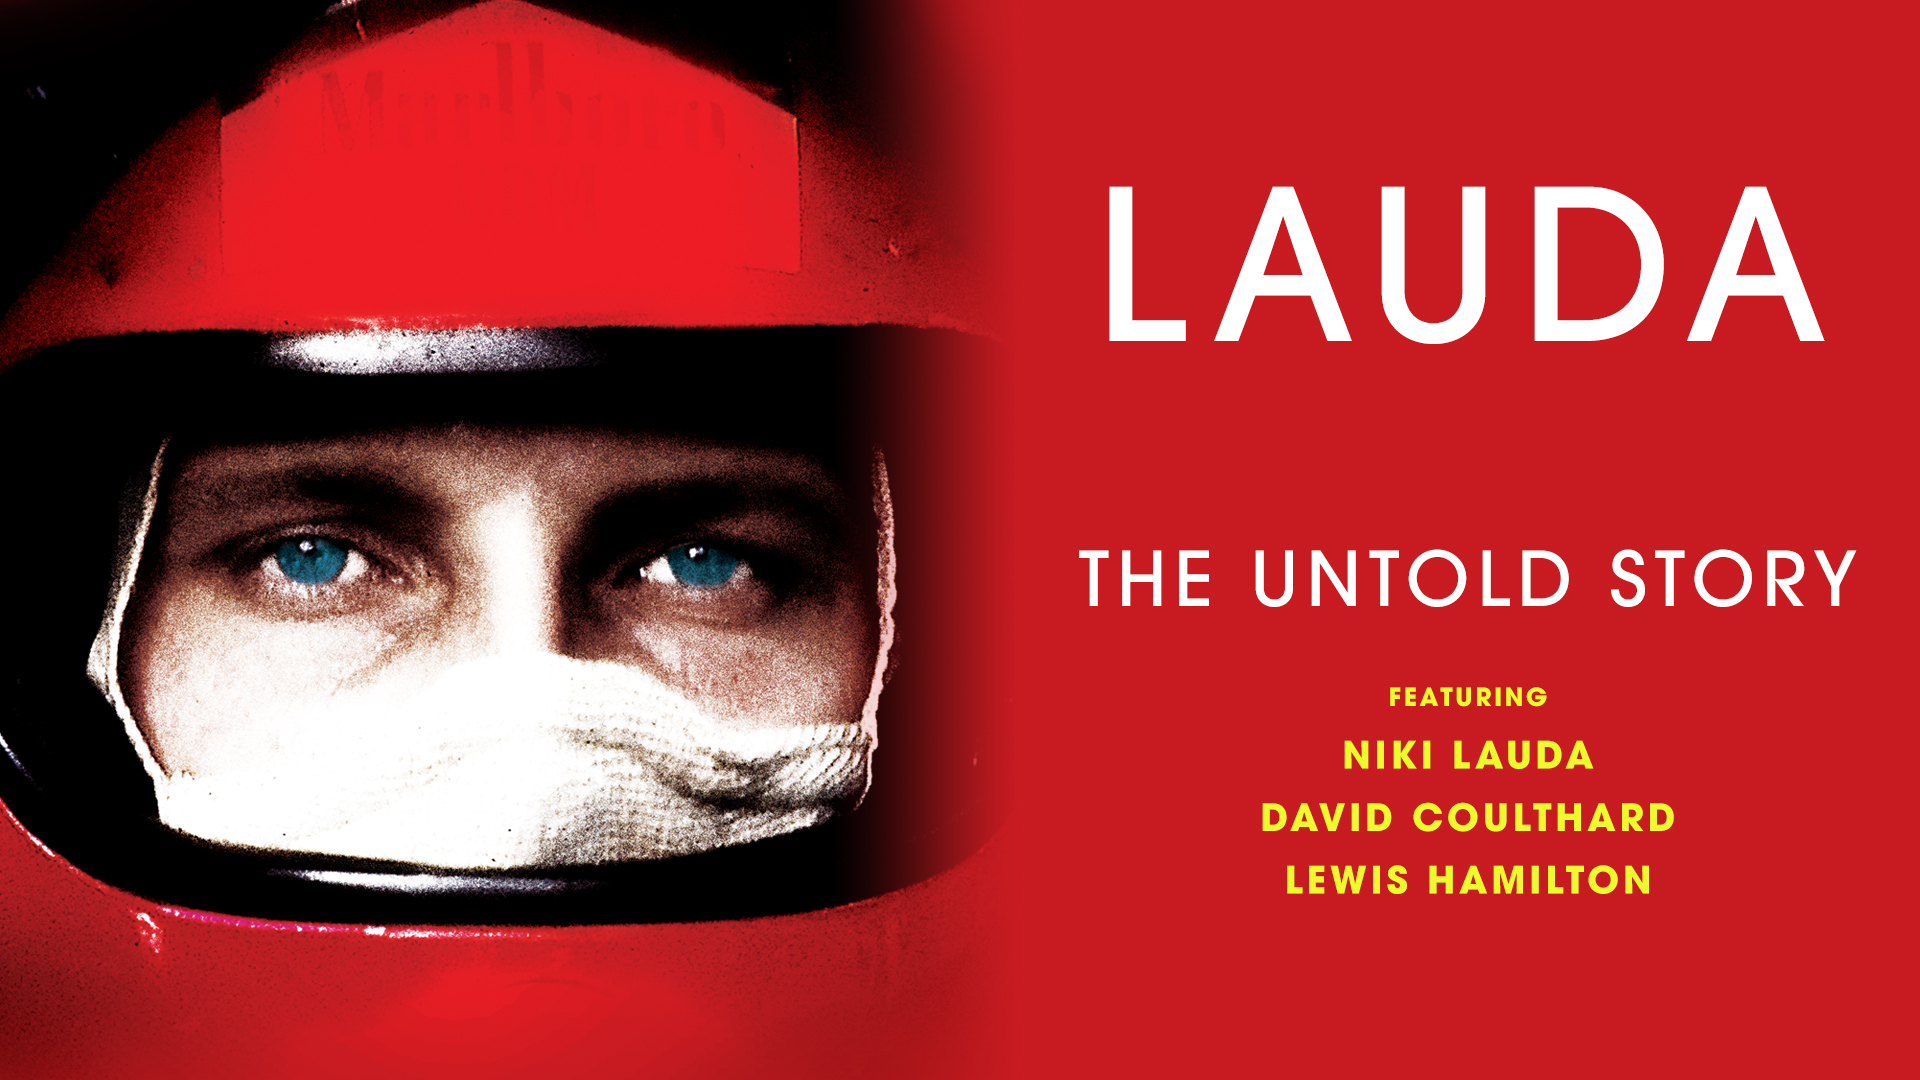 Lauda The Untold Story